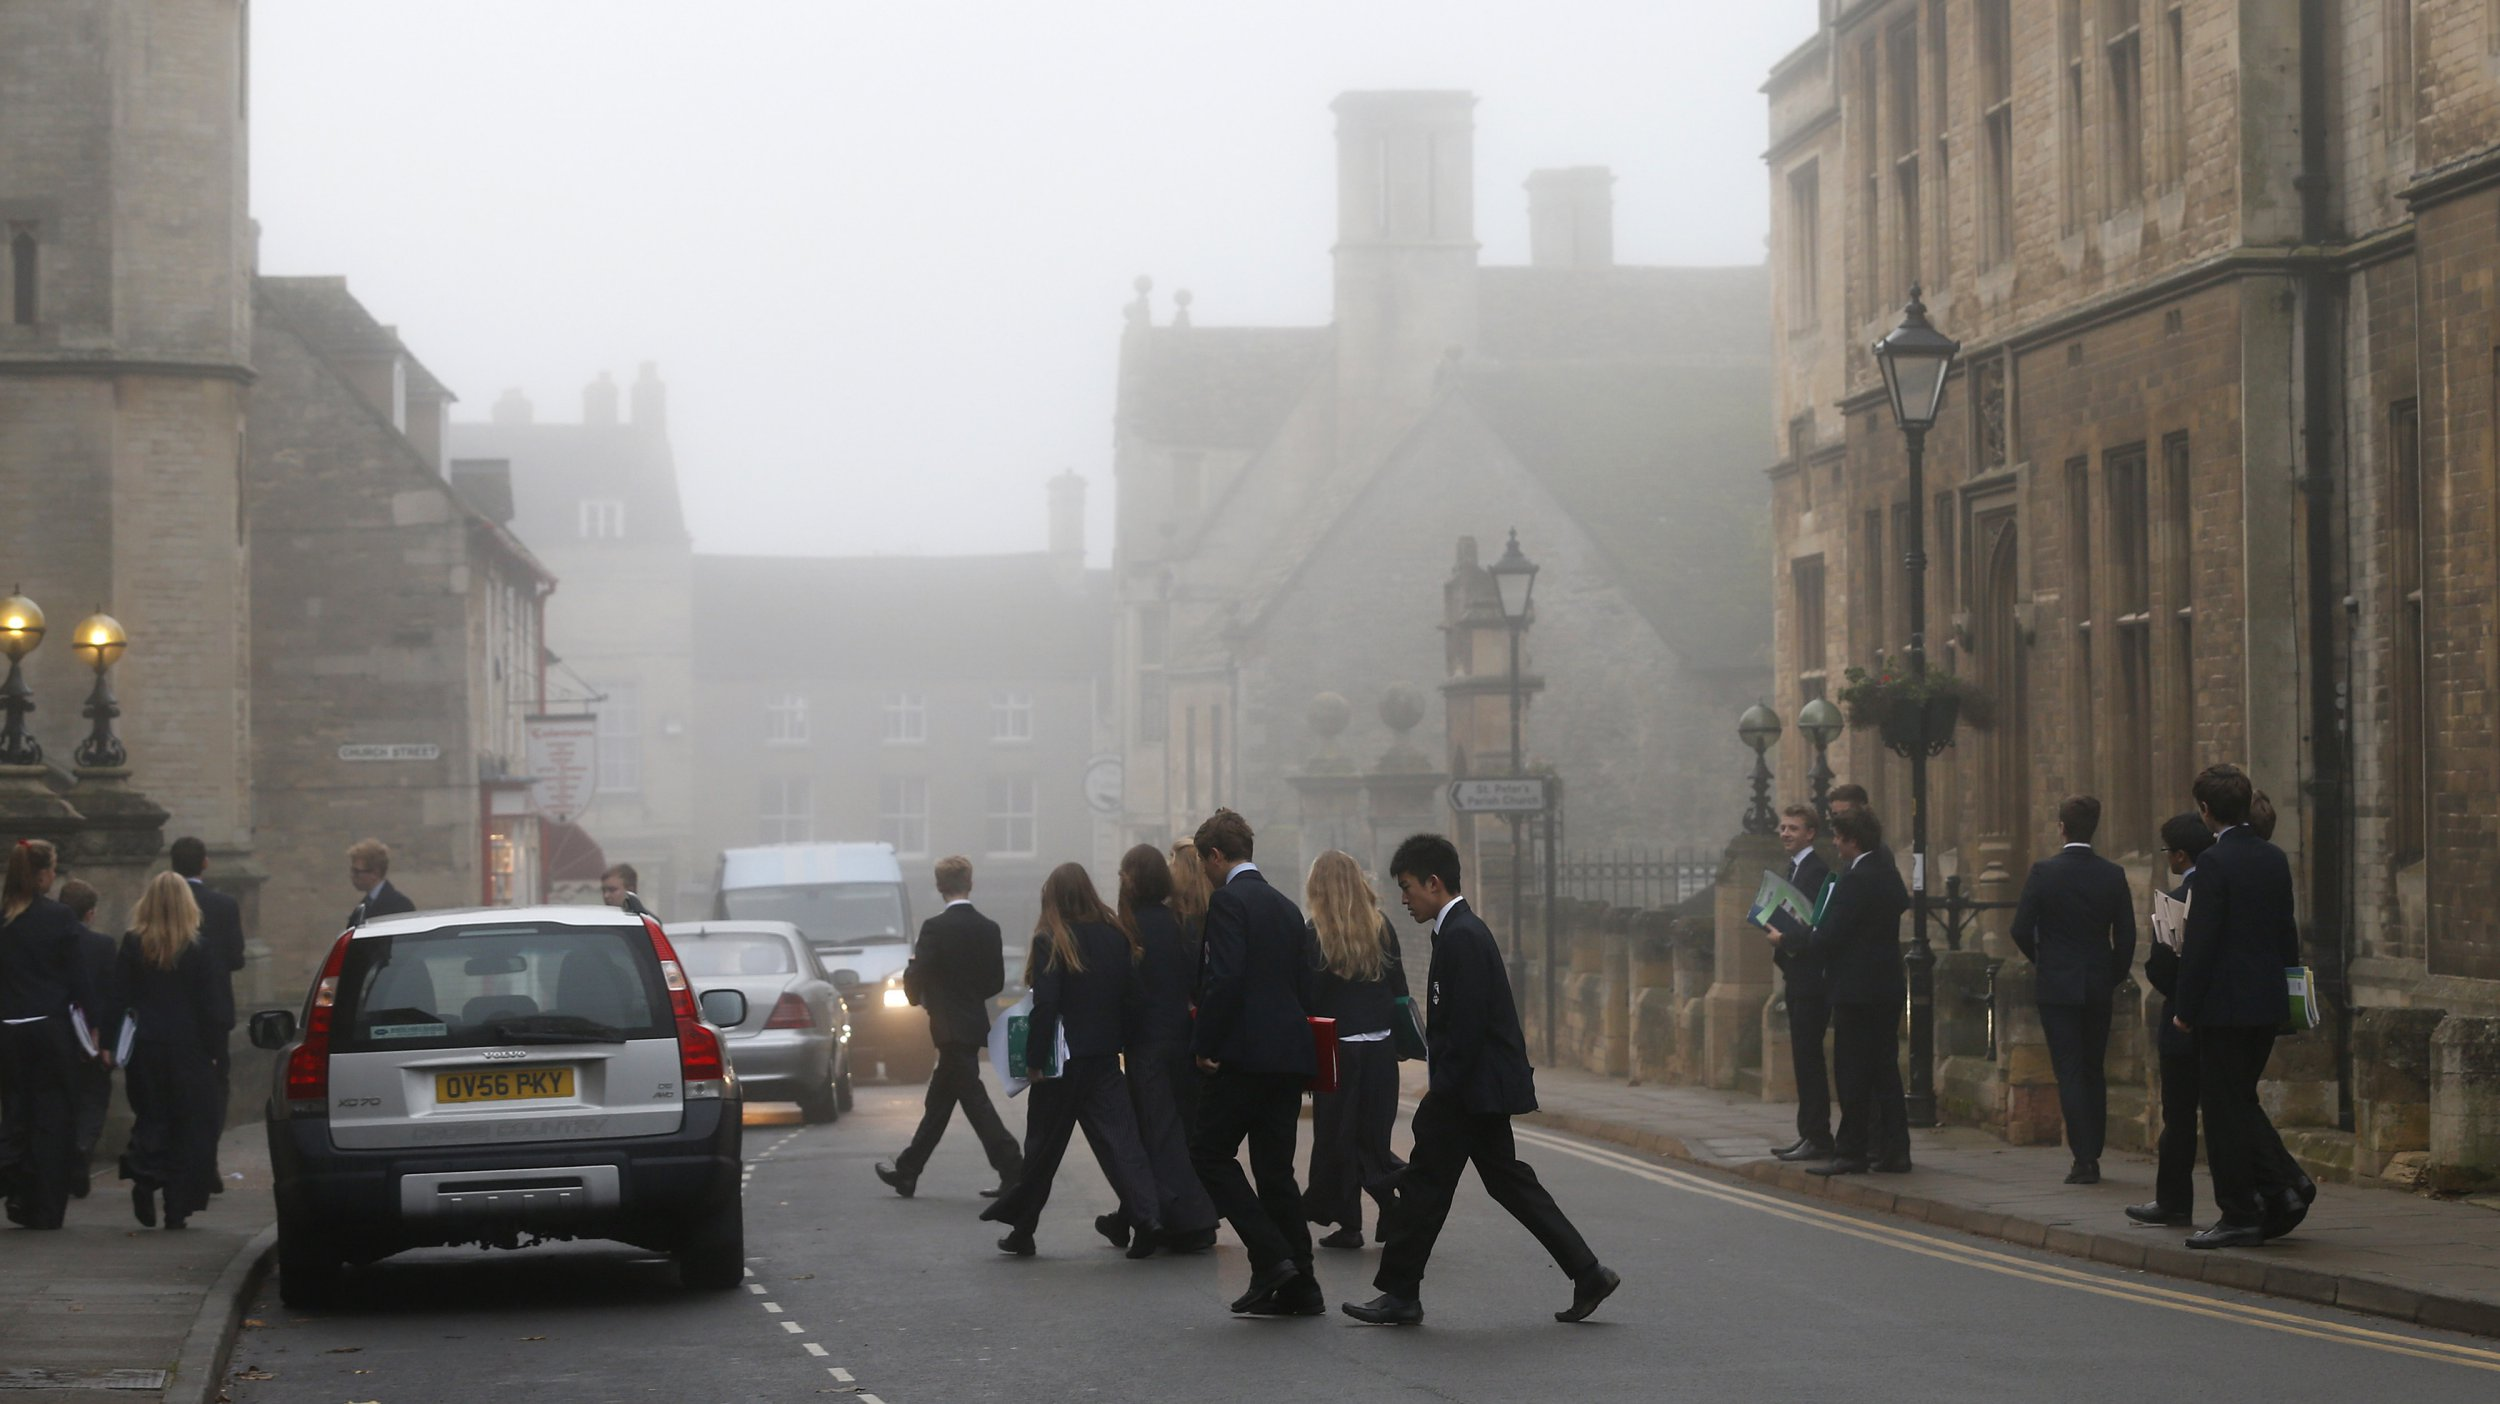 Students arrive for morning lessons at Oundle School in Oundle, near Corby, central England November 15, 2012. Britain's ruling Conservatives are expected to lose the bellwether seat of Corby in a parliamentary by-election on Thursday as voters register a protest against austerity and economic malaise. REUTERS/Eddie Keogh (BRITAIN - Tags: POLITICS ELECTIONS) - LM1E8BF0QA101